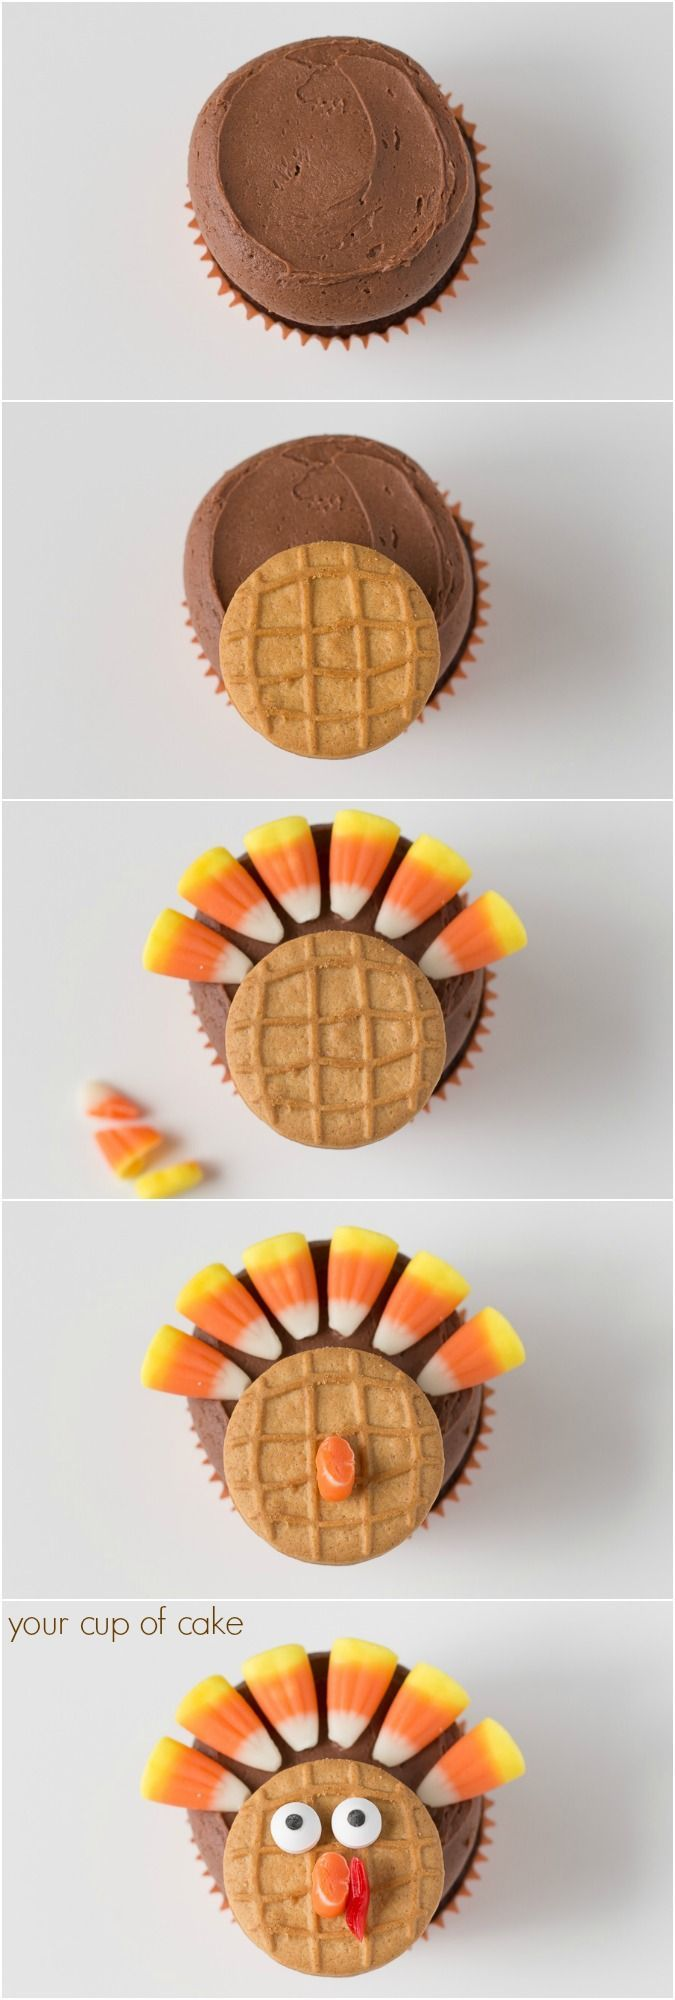 How to make Chocolate Turkey Cupcakes for Thanksgiving!